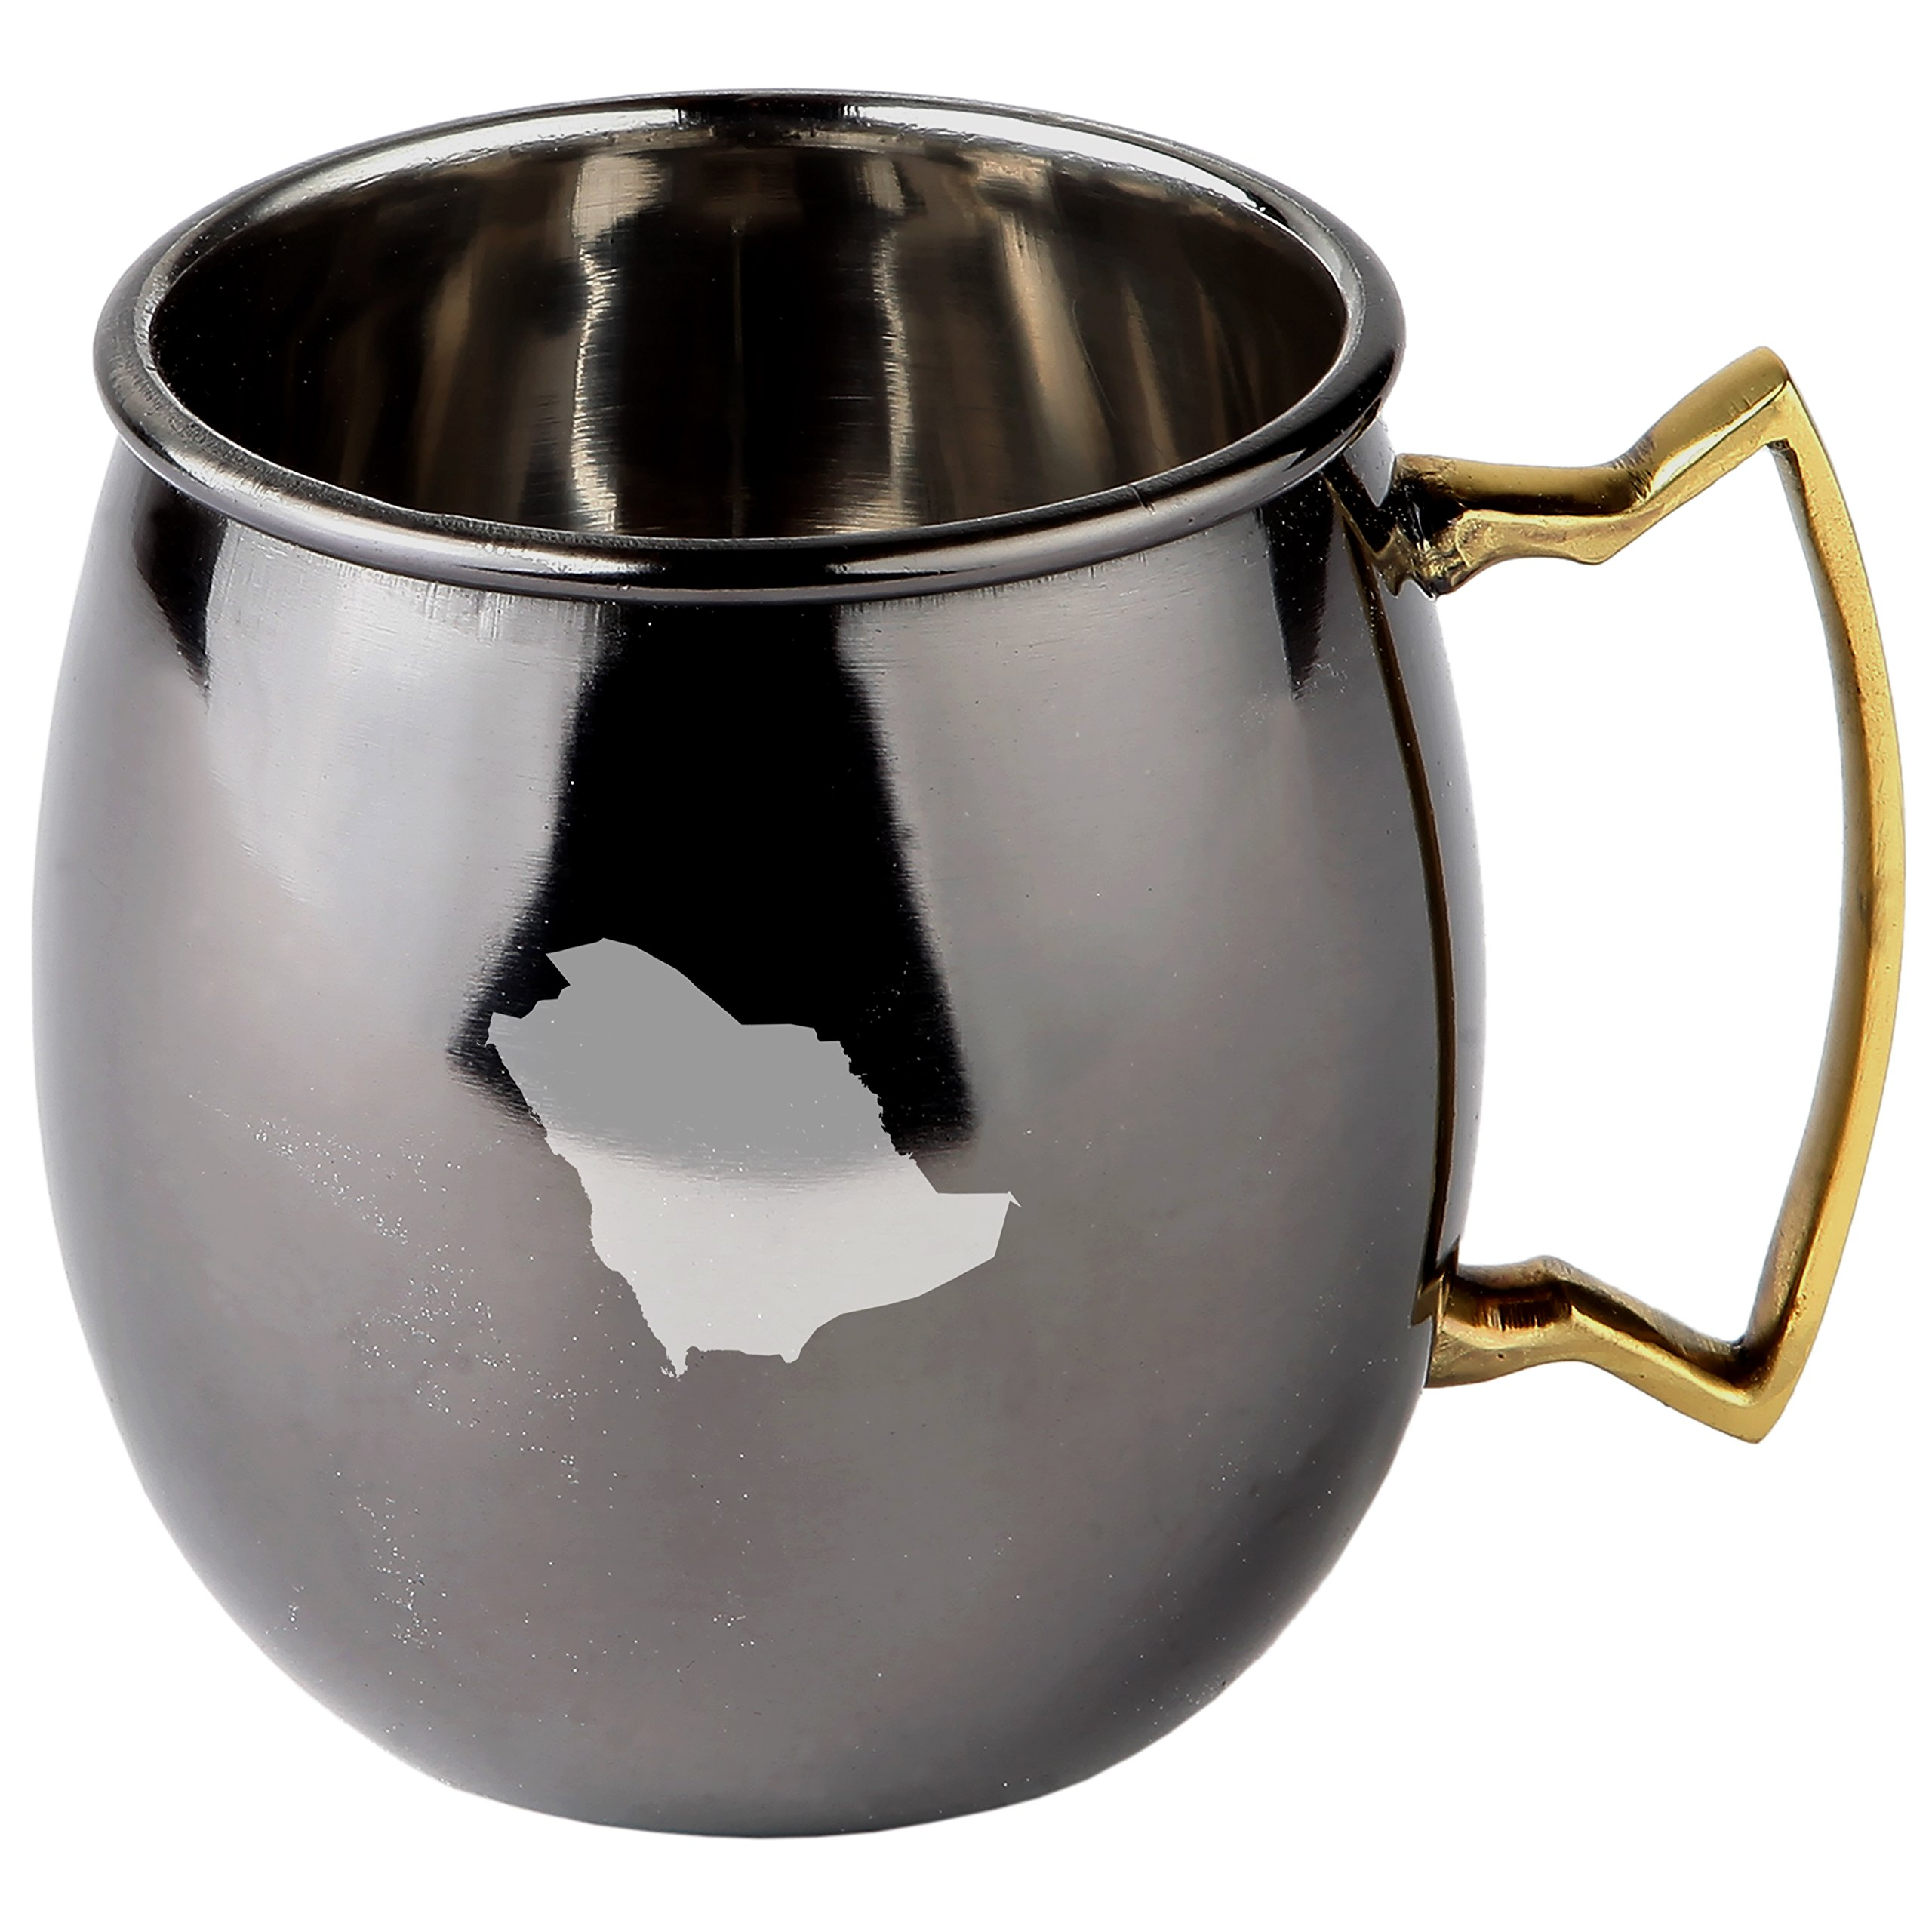 Saudi Arabia Stainless Steel Moscow Mule Mugs With Black Mirror Finish - Copper Plated Cocktail Mug - 16 Oz Moscow Mule Mug Gift